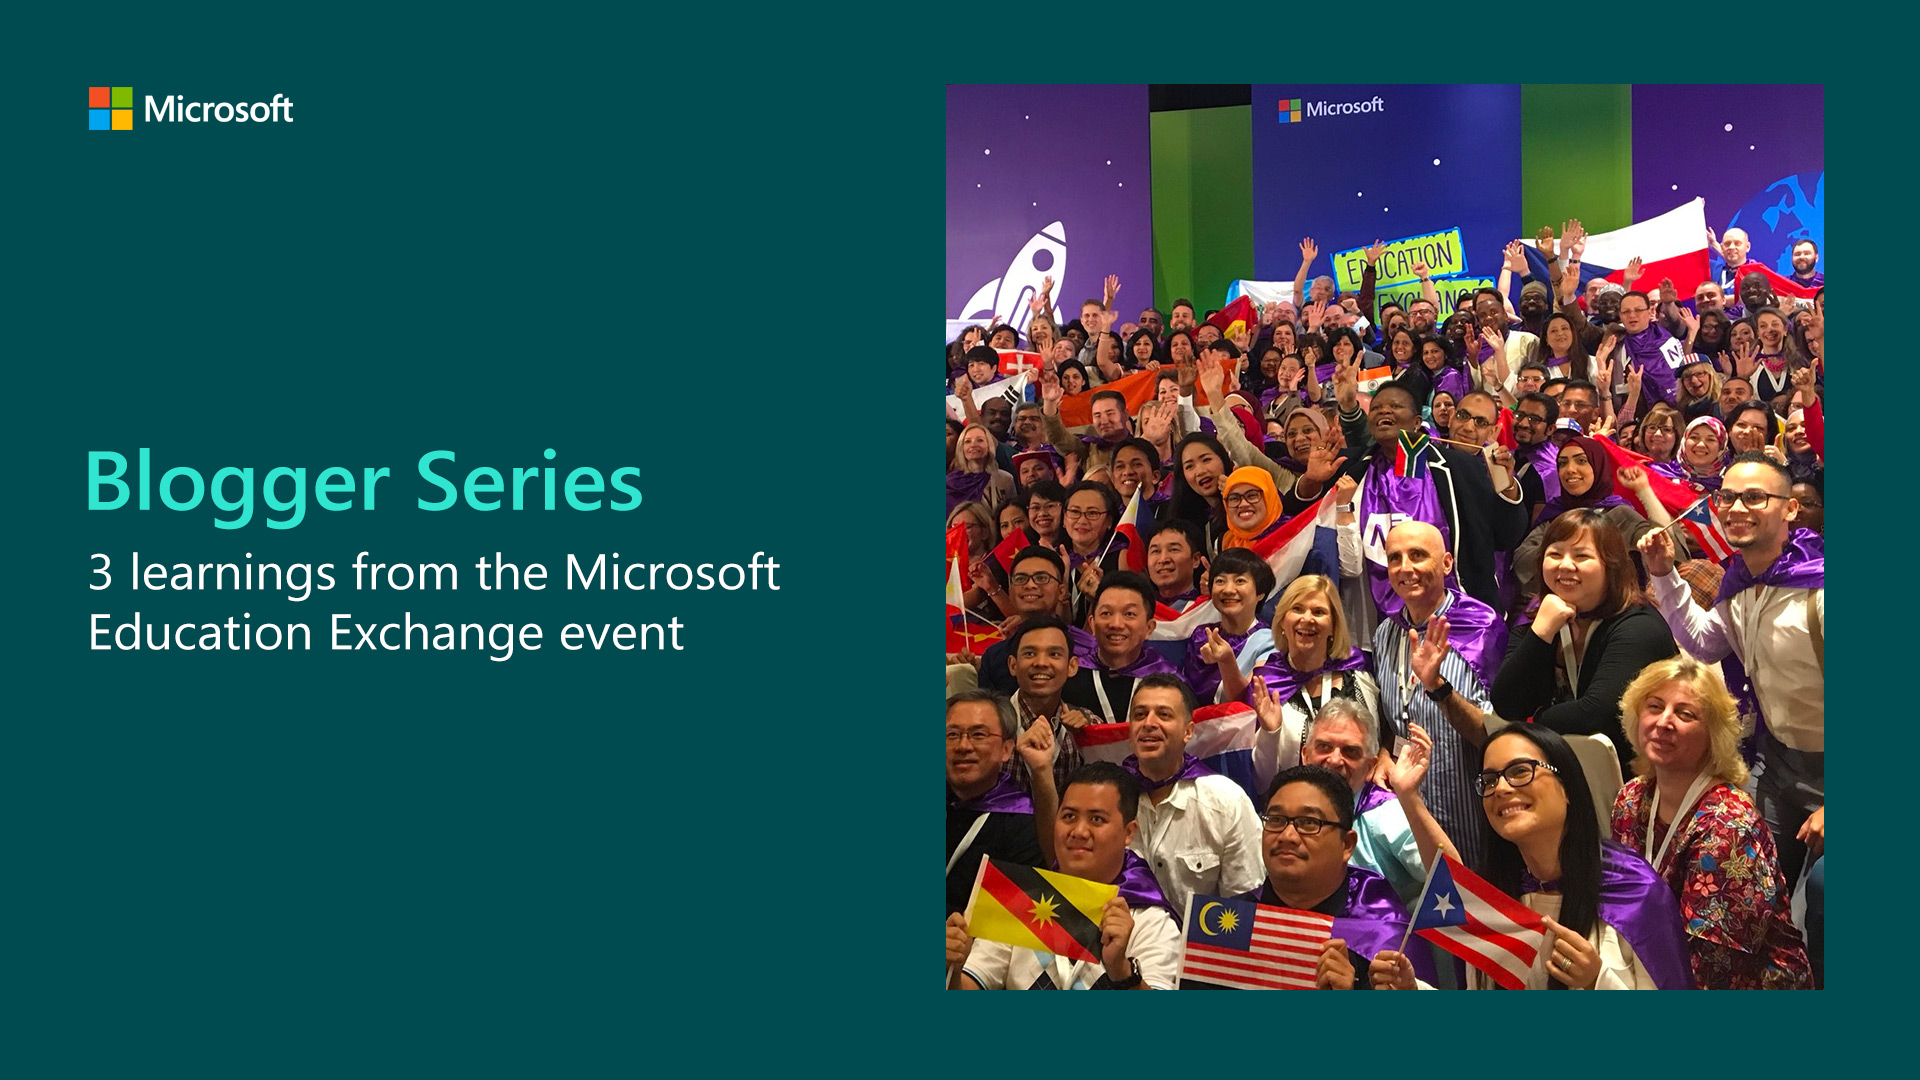 ATtendees of the Microsoft Education Exchange event in Paris